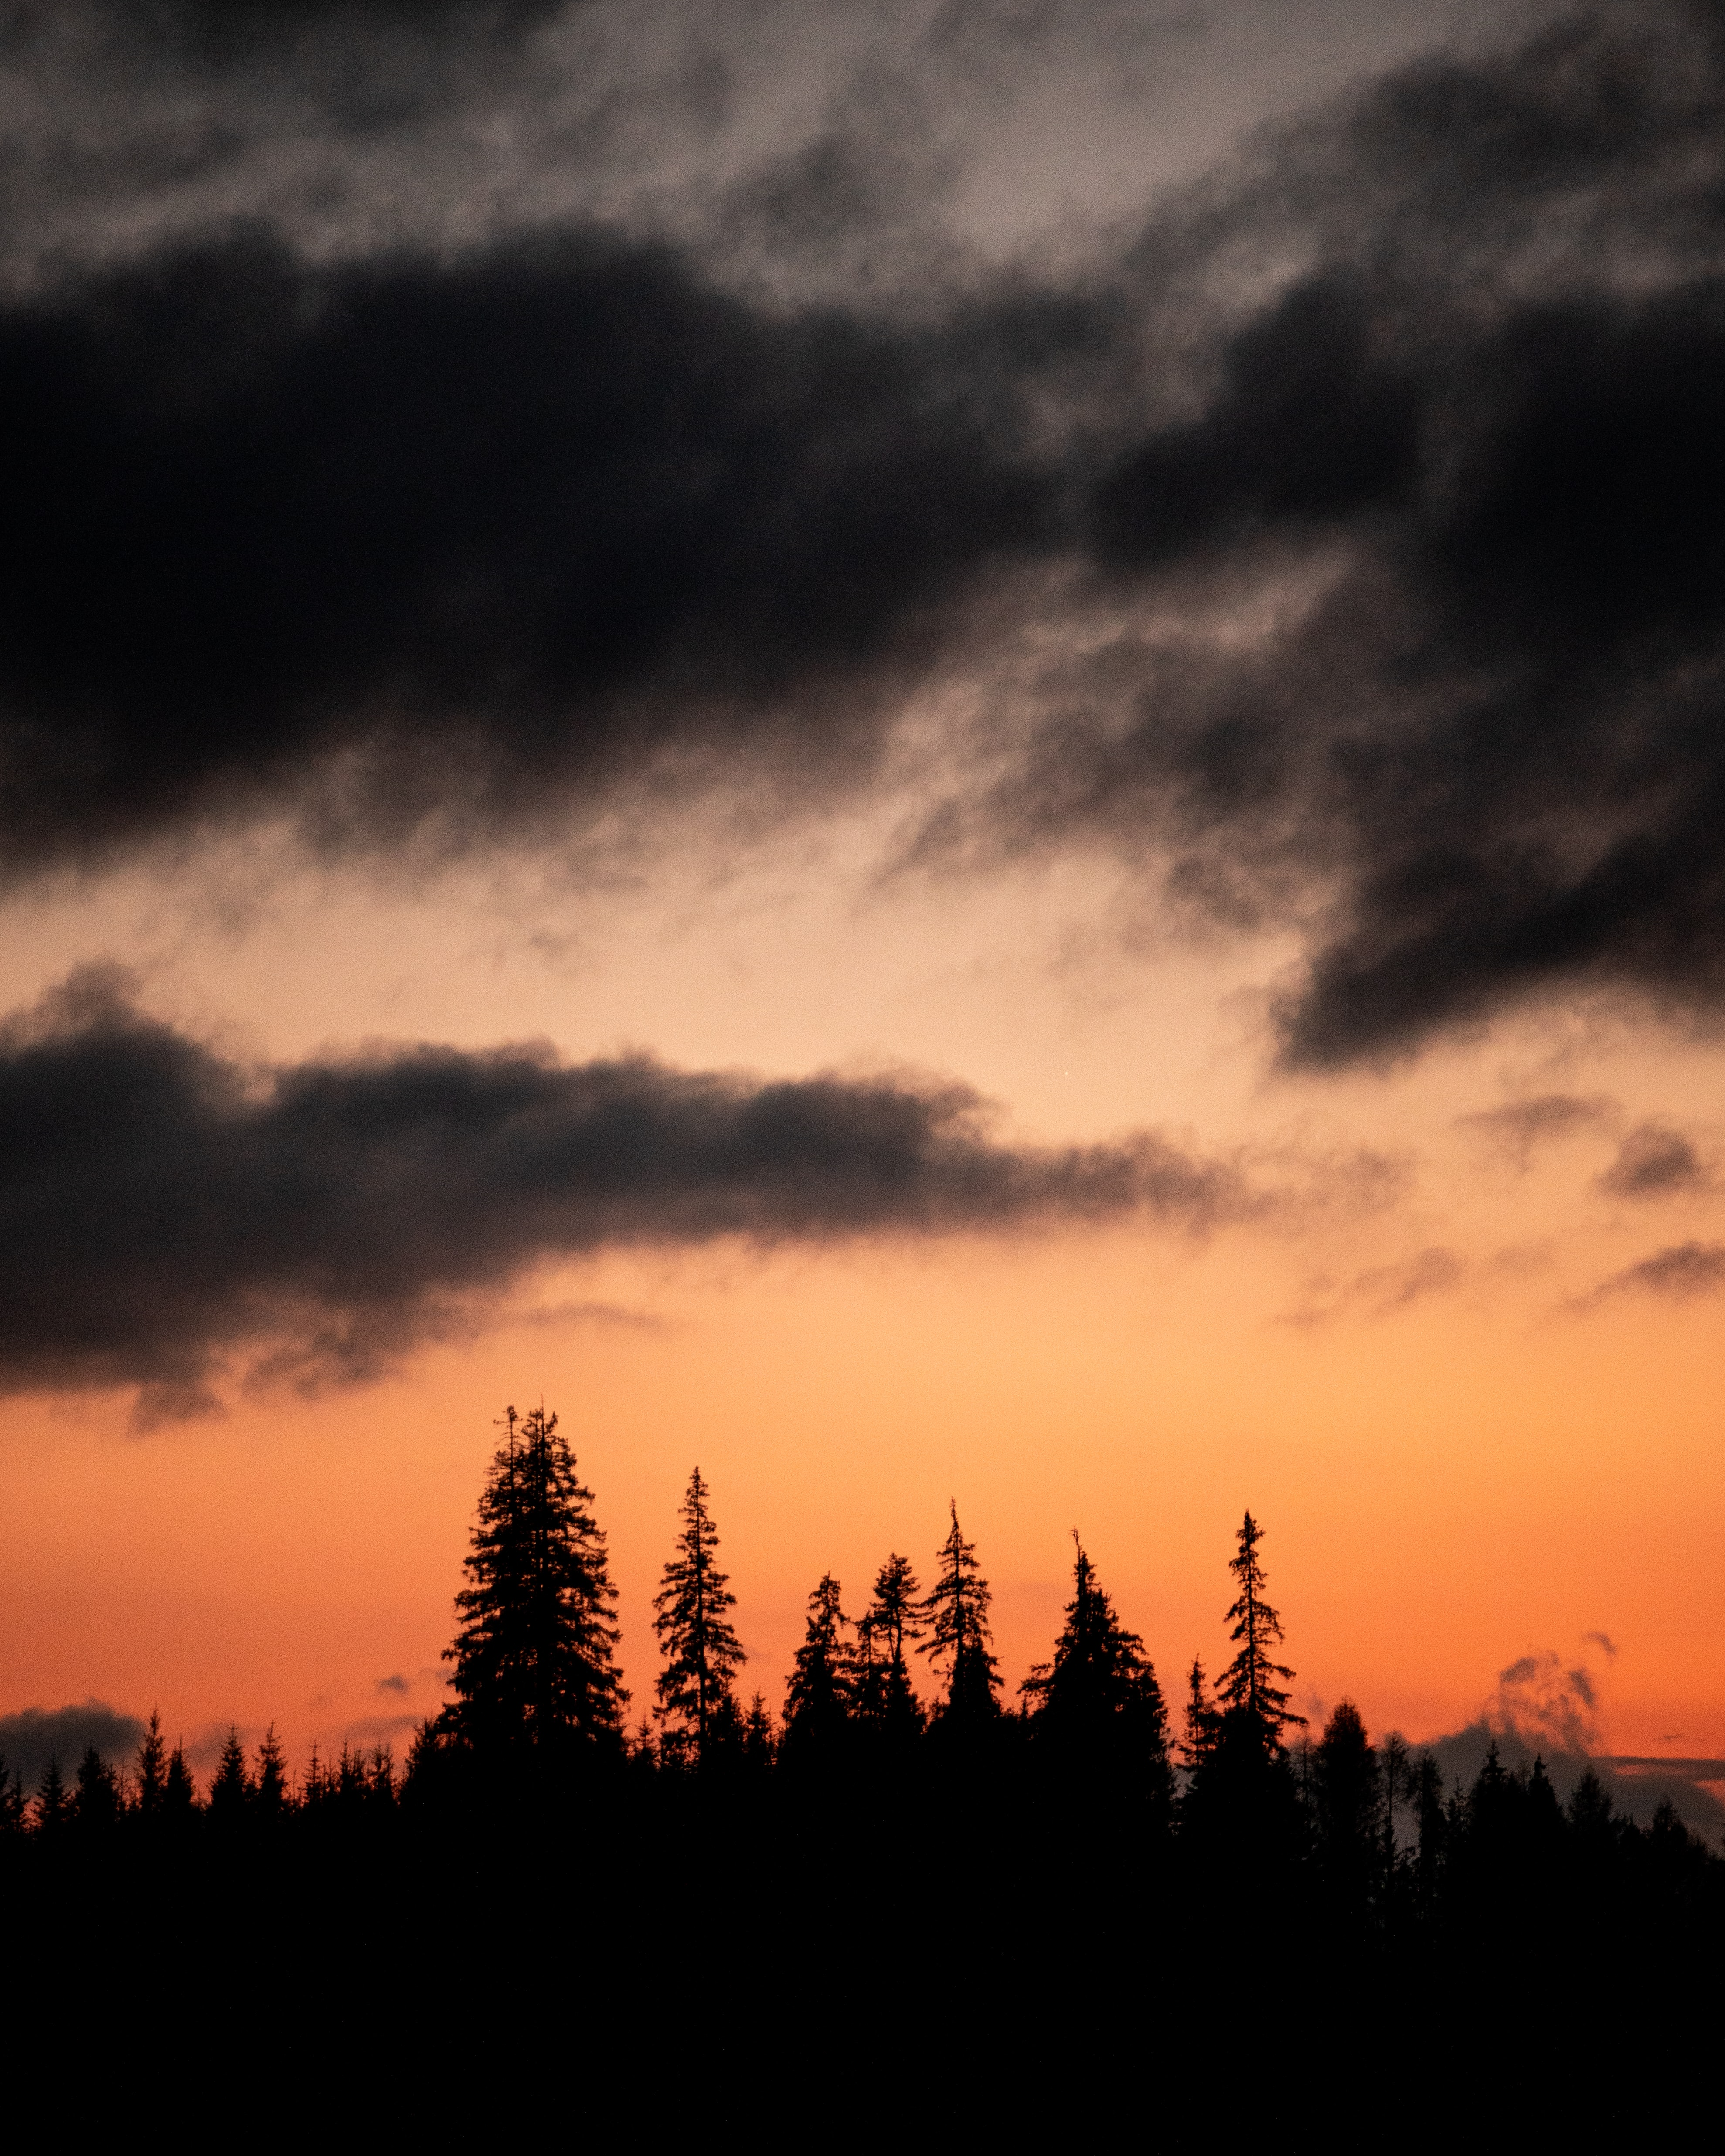 131907 download wallpaper Nature, Trees, Silhouettes, Sunset, Dusk, Twilight screensavers and pictures for free